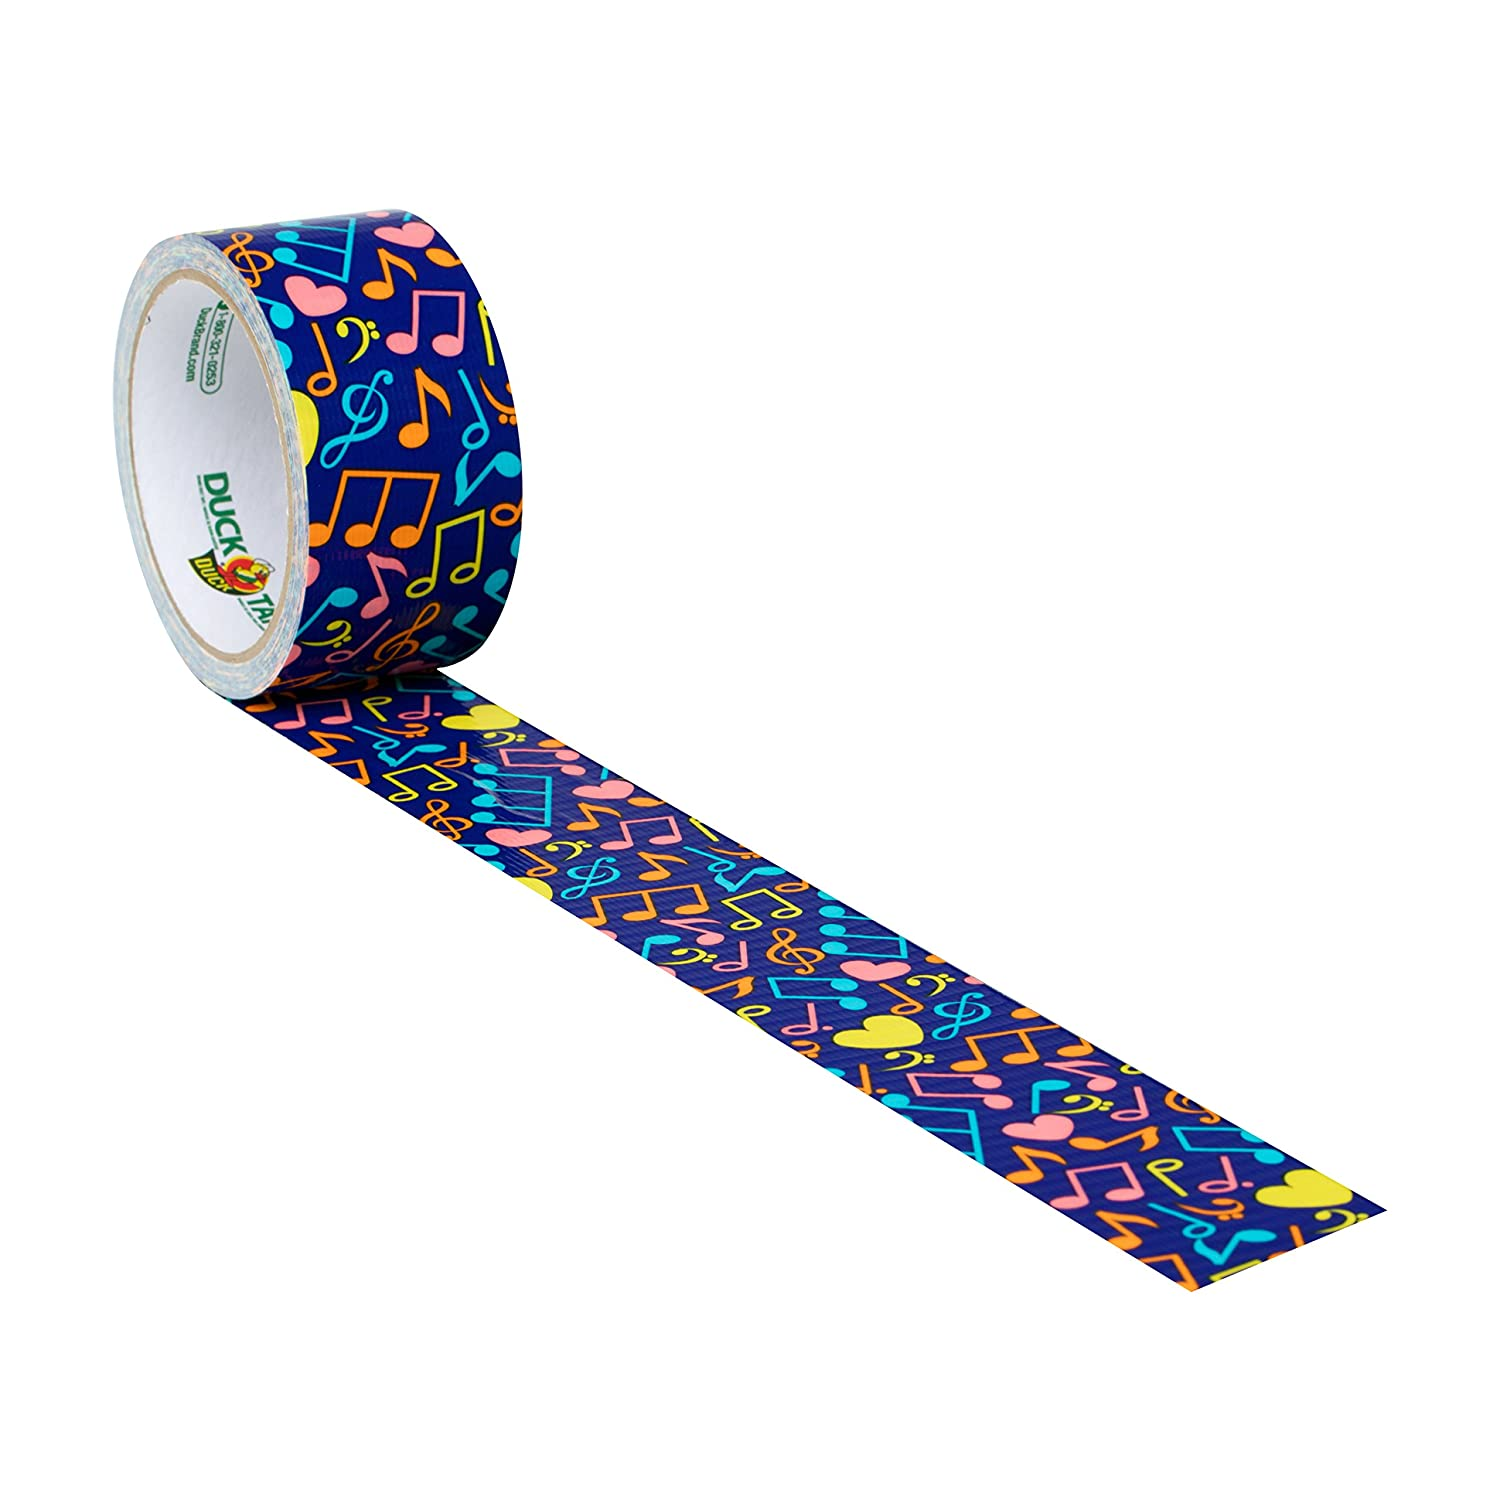 Amazoncom Duck Brand 284178 Printed Duct Tape, Musical Notes, 188